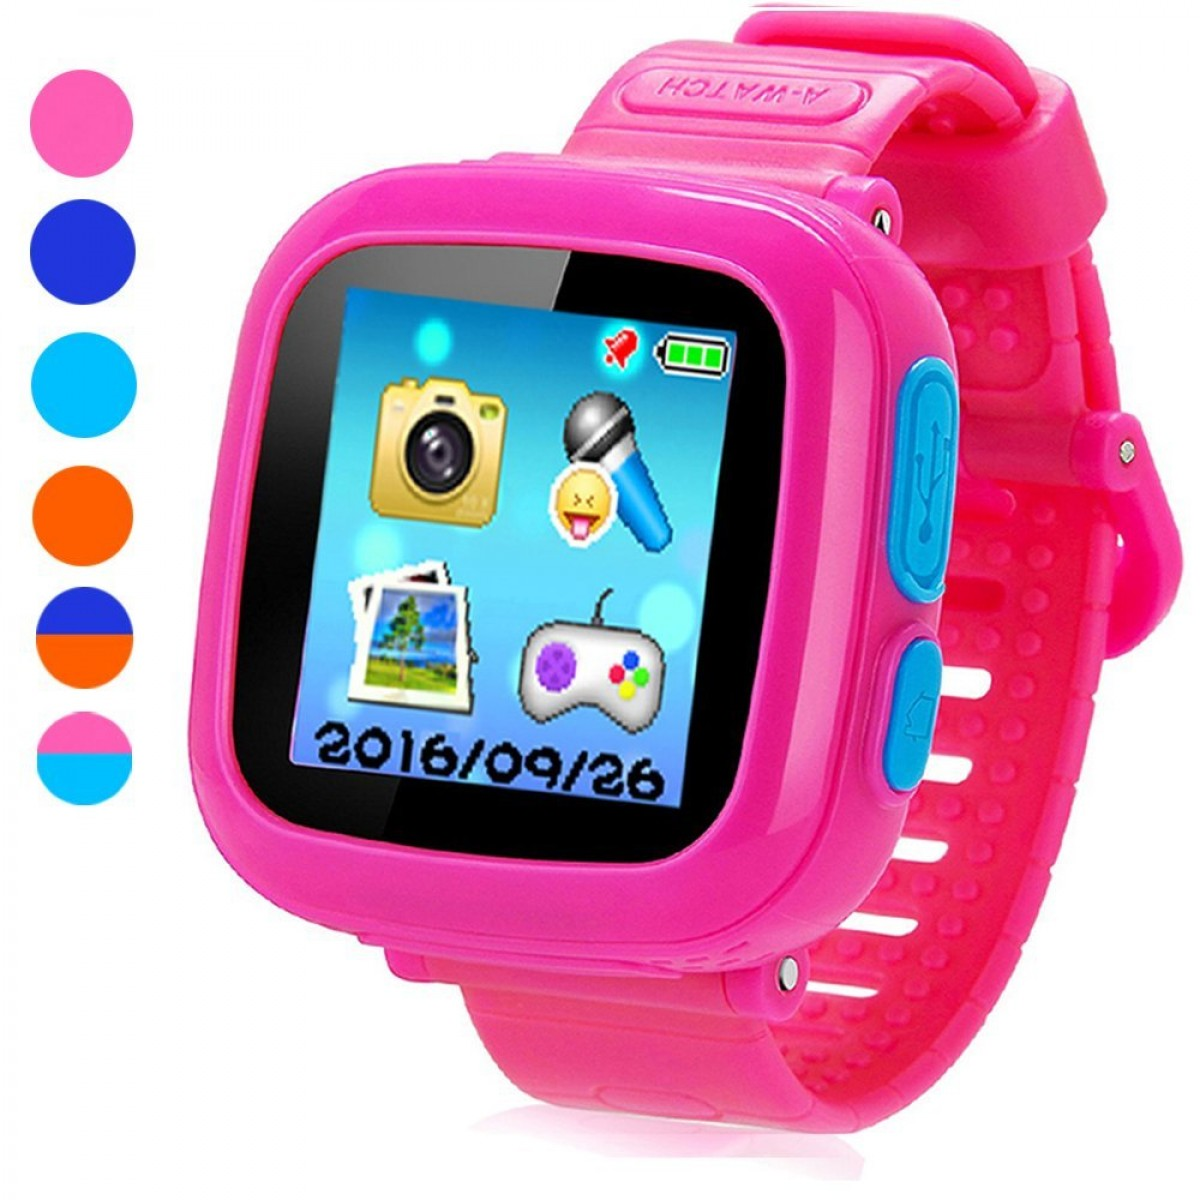 Game Smart Watch For Kids Childrens Camera 15 Touch Screen Pedometer 10 Games Timer Alarm Clock Health Monitor Boys Girls Game Watchespink